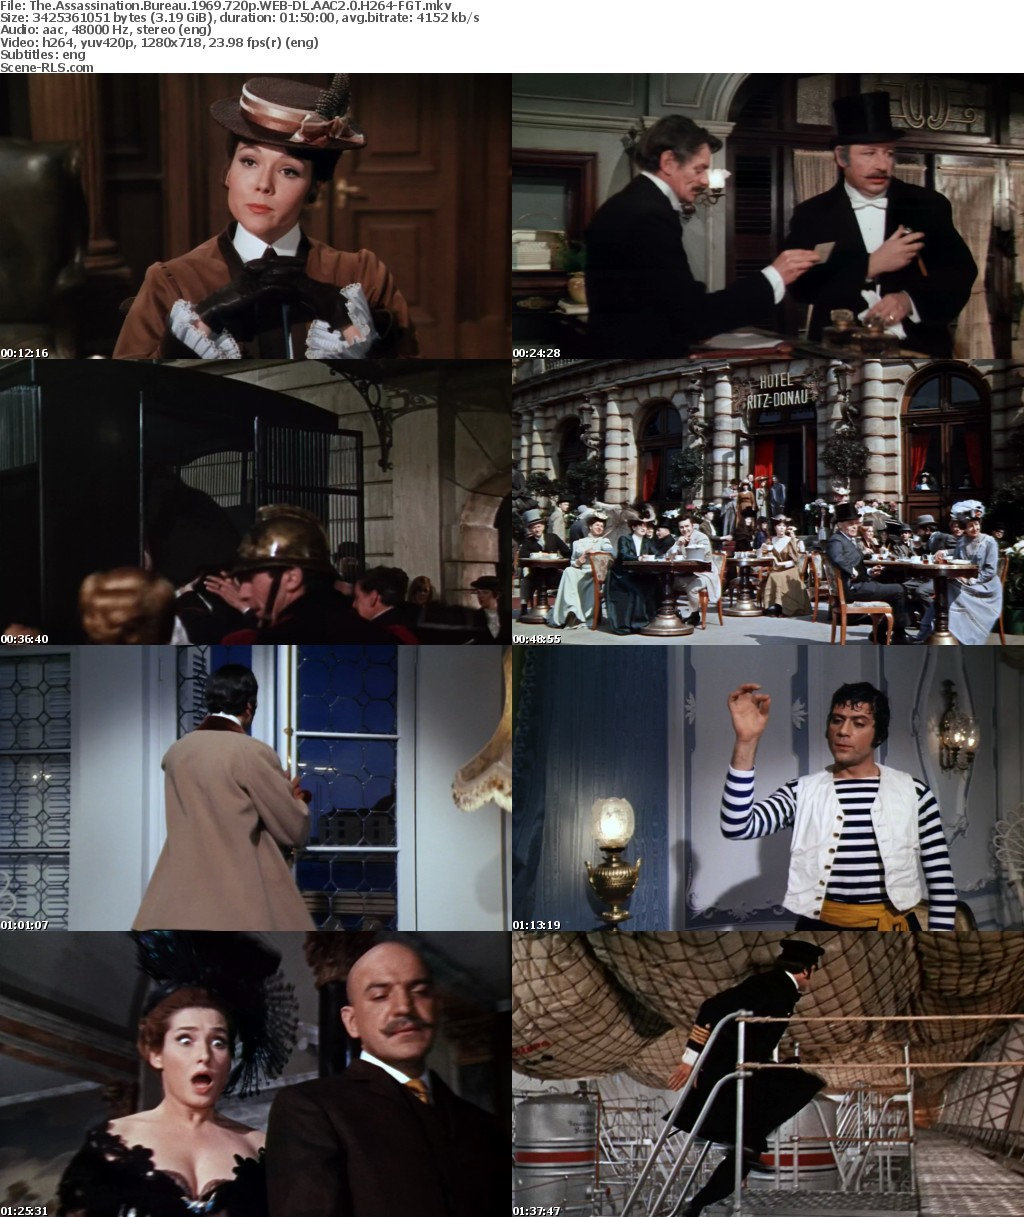 the assassination bureau 1969 movies tv network the assassination bureau oliver reed diana. Black Bedroom Furniture Sets. Home Design Ideas